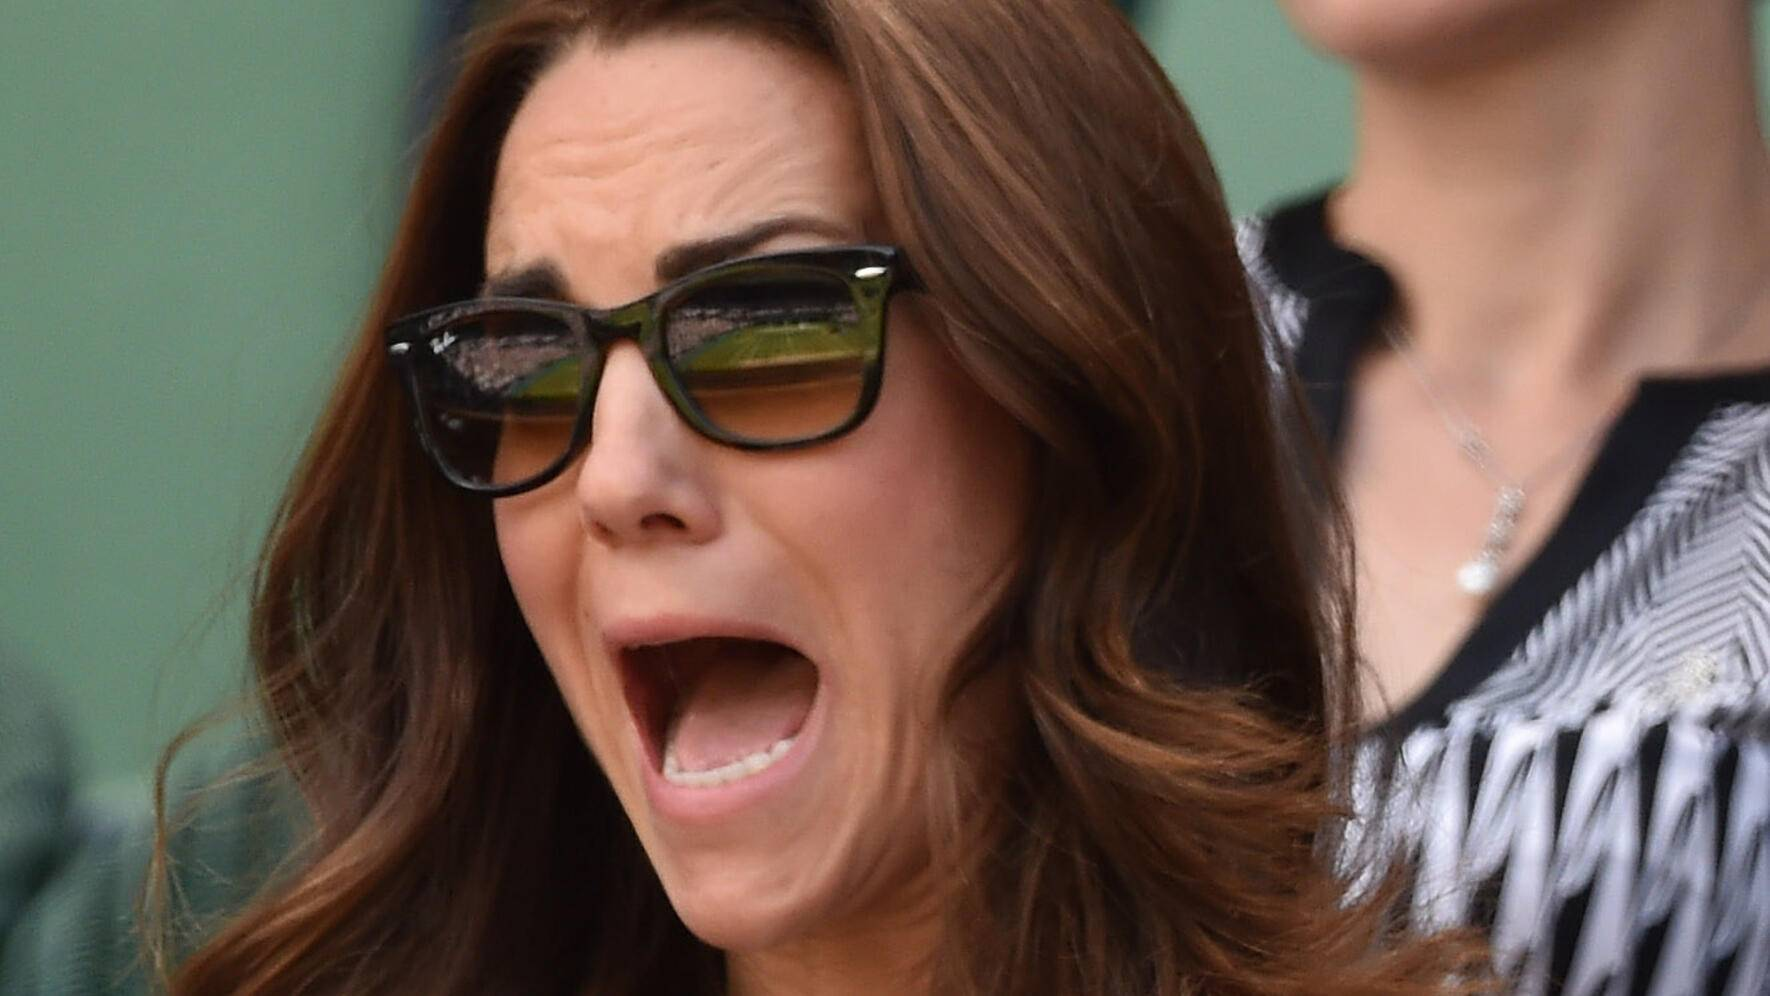 LONDON, ENGLAND - JULY 02:  Catherine, Duchess of Cambridge attends the Simone Halep v Sabine Lisicki match on centre court during day nine of the Wimbledon Championships at Wimbledon on July 2, 2014 in London, England.  (Photo by Karwai Tang/WireImage)